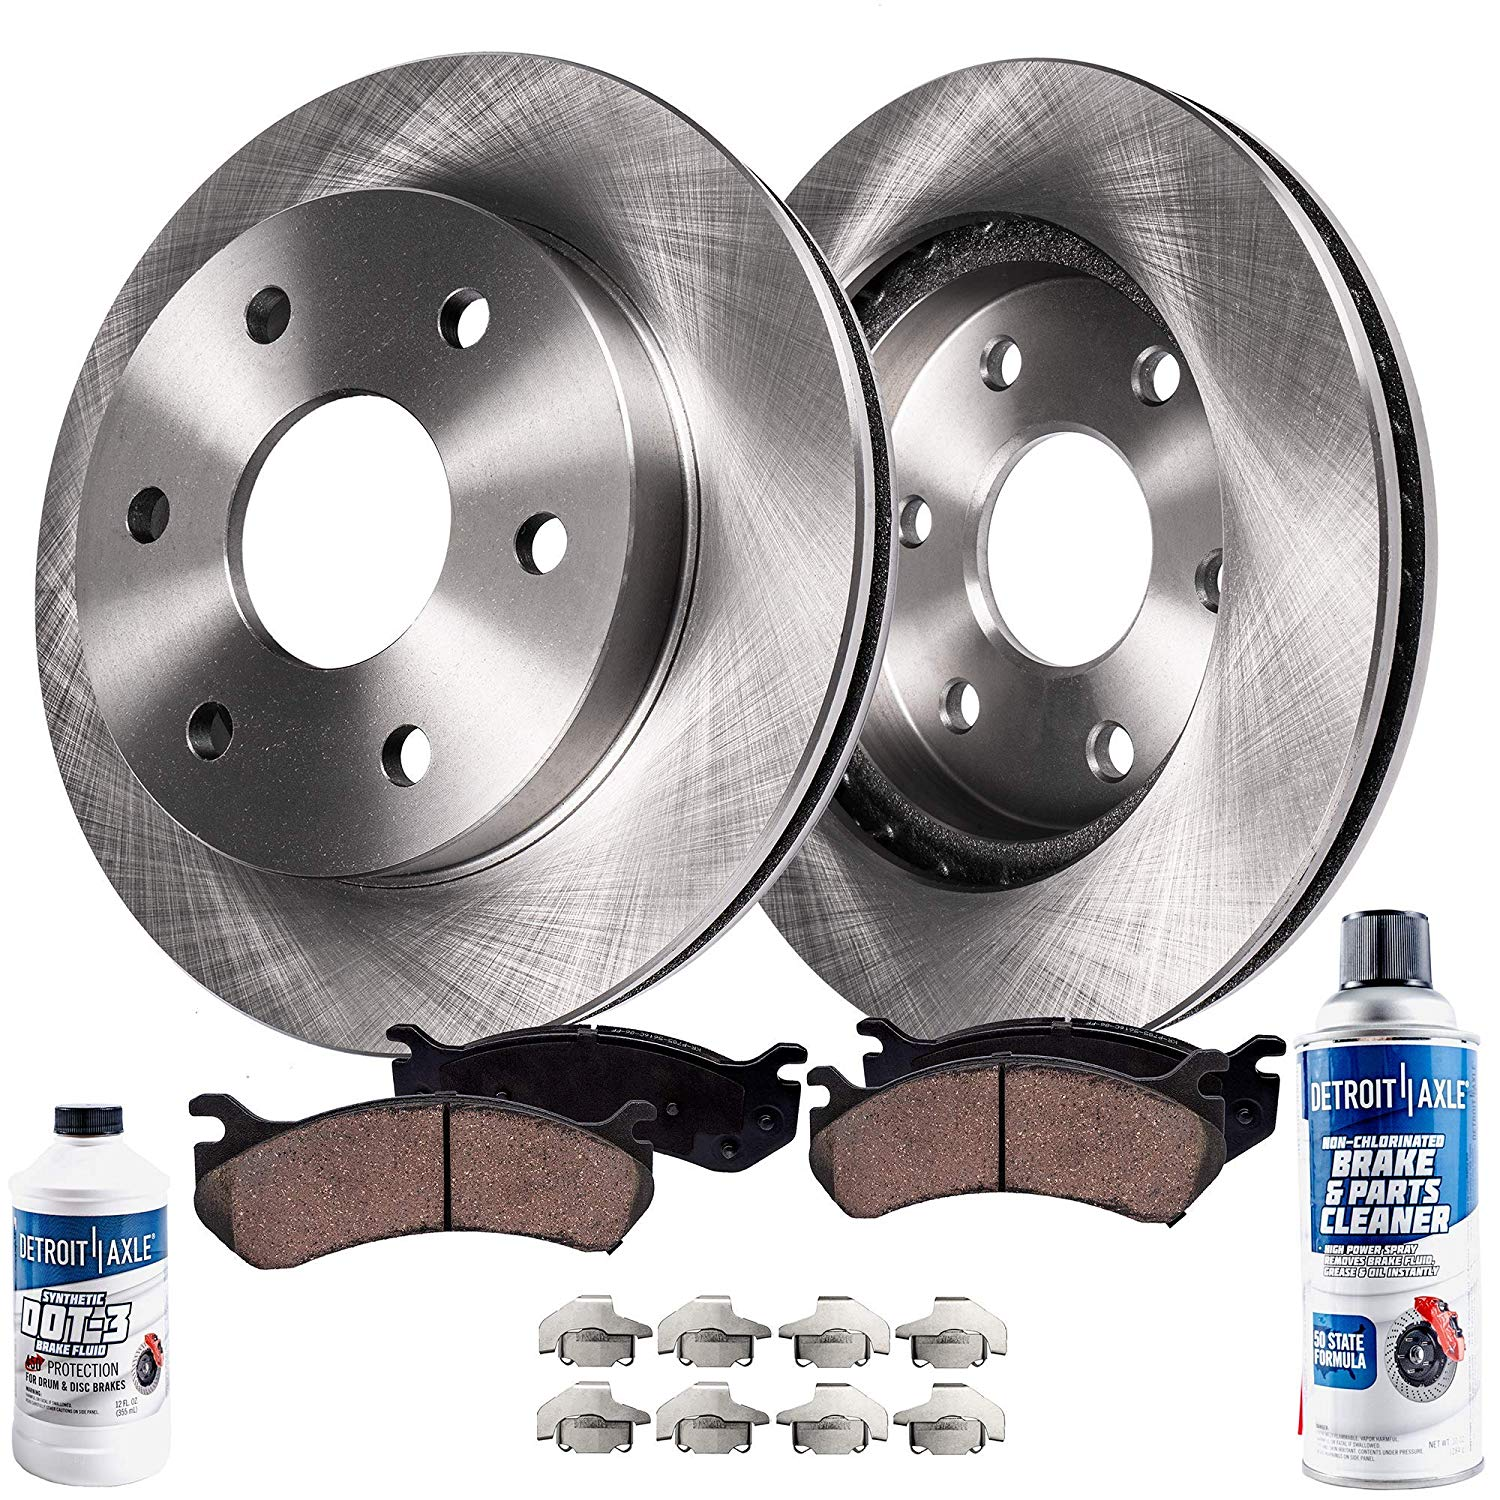 2005 2006 for GMC Envoy Denali Disc Brake Rotors and Ceramic Pads Front